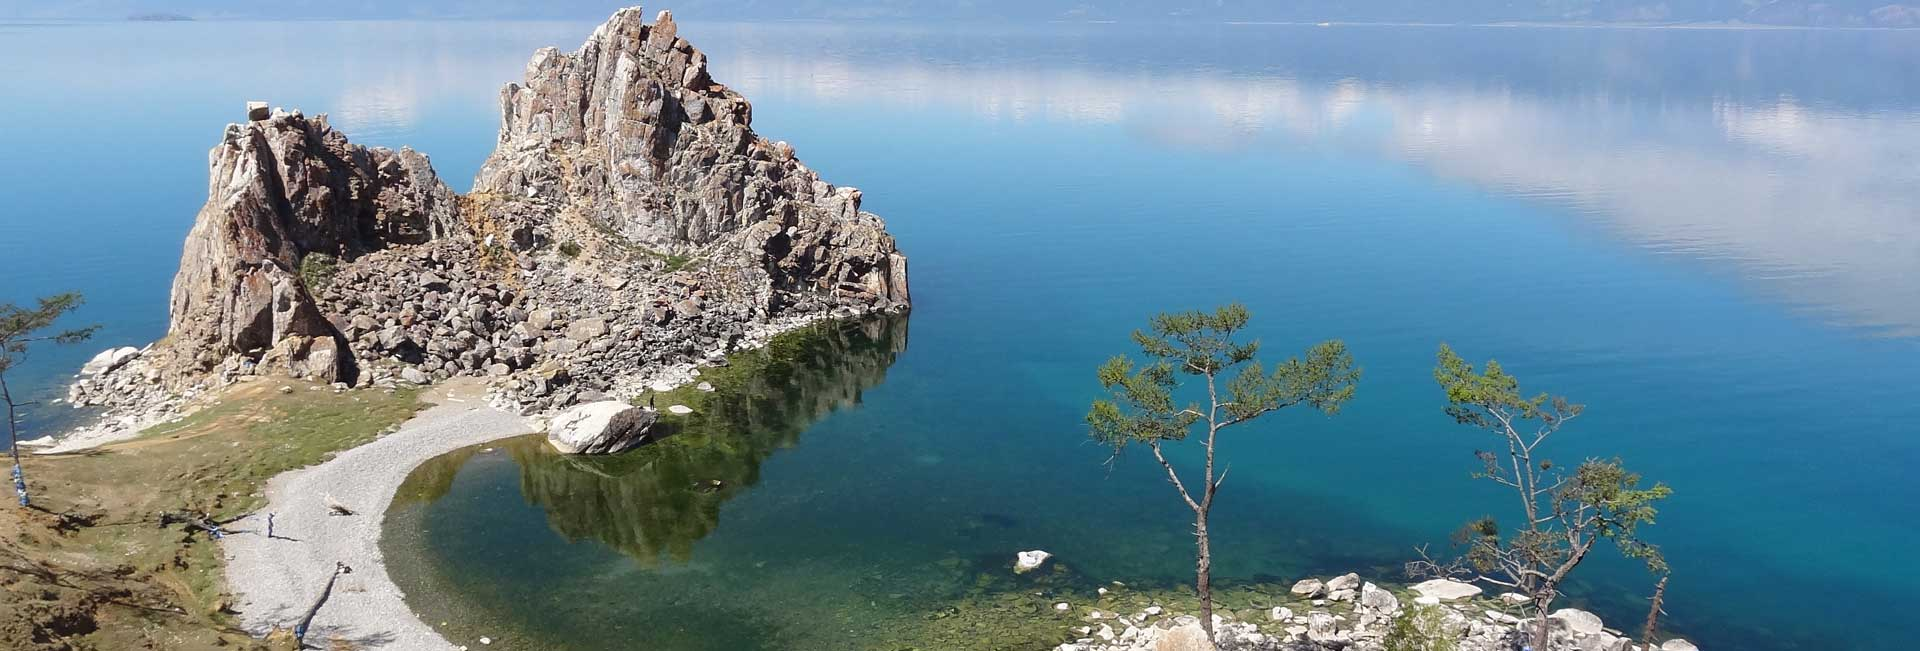 Sacred Shaman Rock on Siberia's Olkhon Island, Lake Baikal. Photo credit: Vladimir Kvashnin